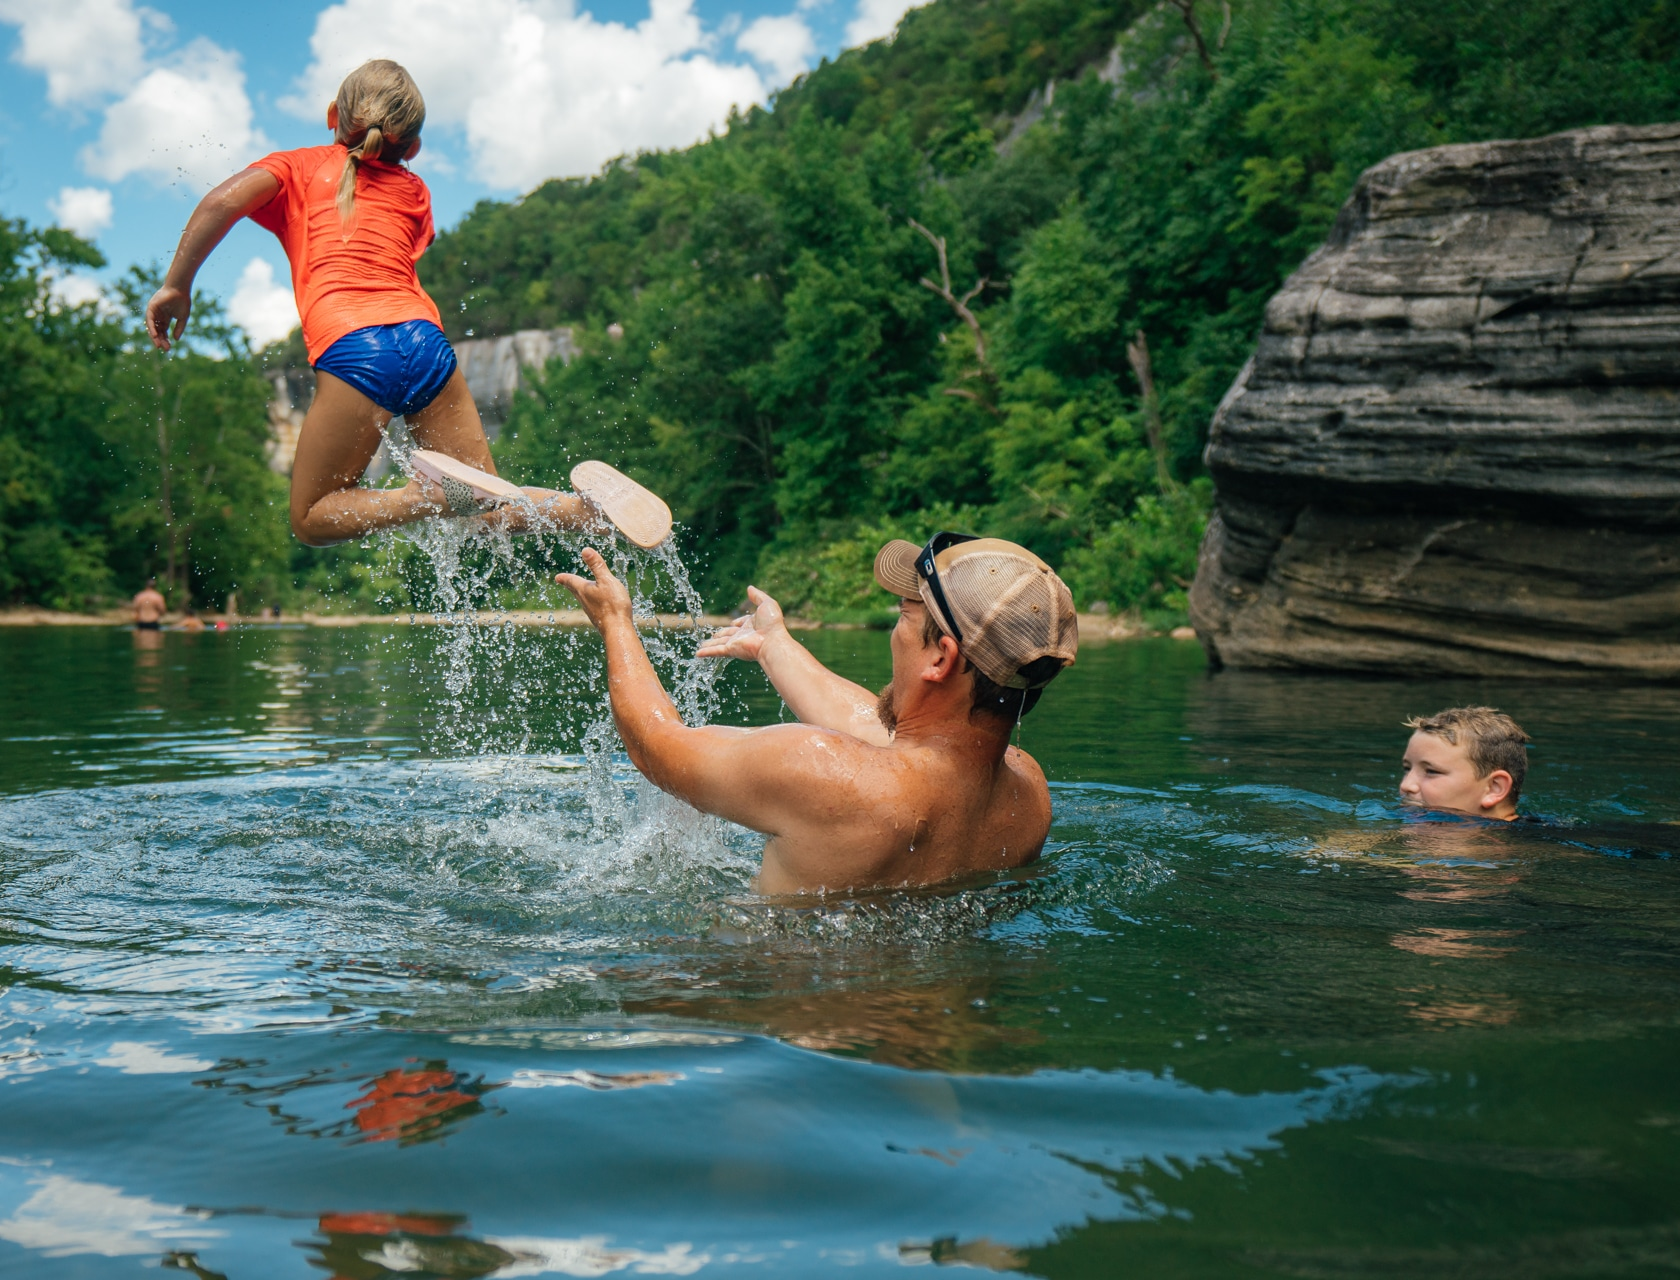 A family playing in a beautiful Buffalo River swimming hole during summer.